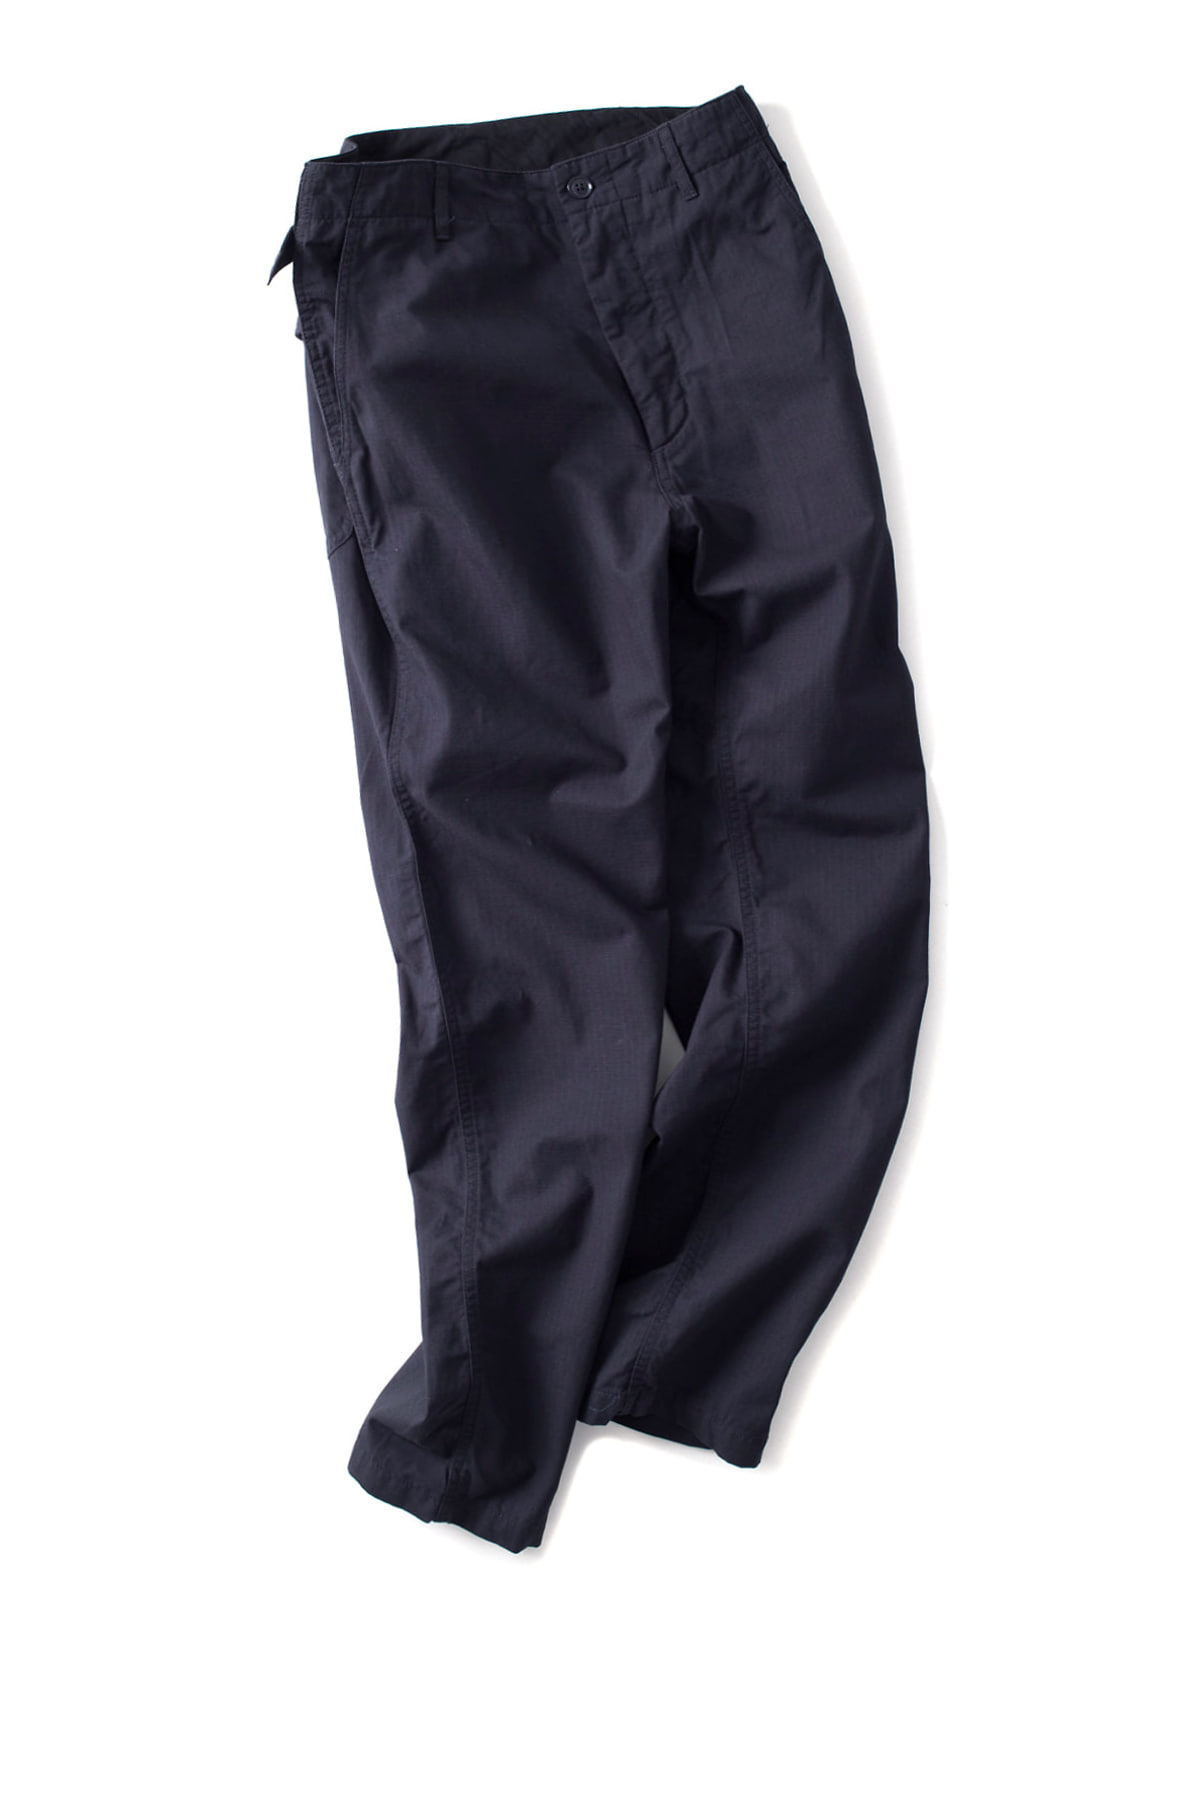 Engineered Garments : Ground Pants (DK.Navy Cotton Ripstop)